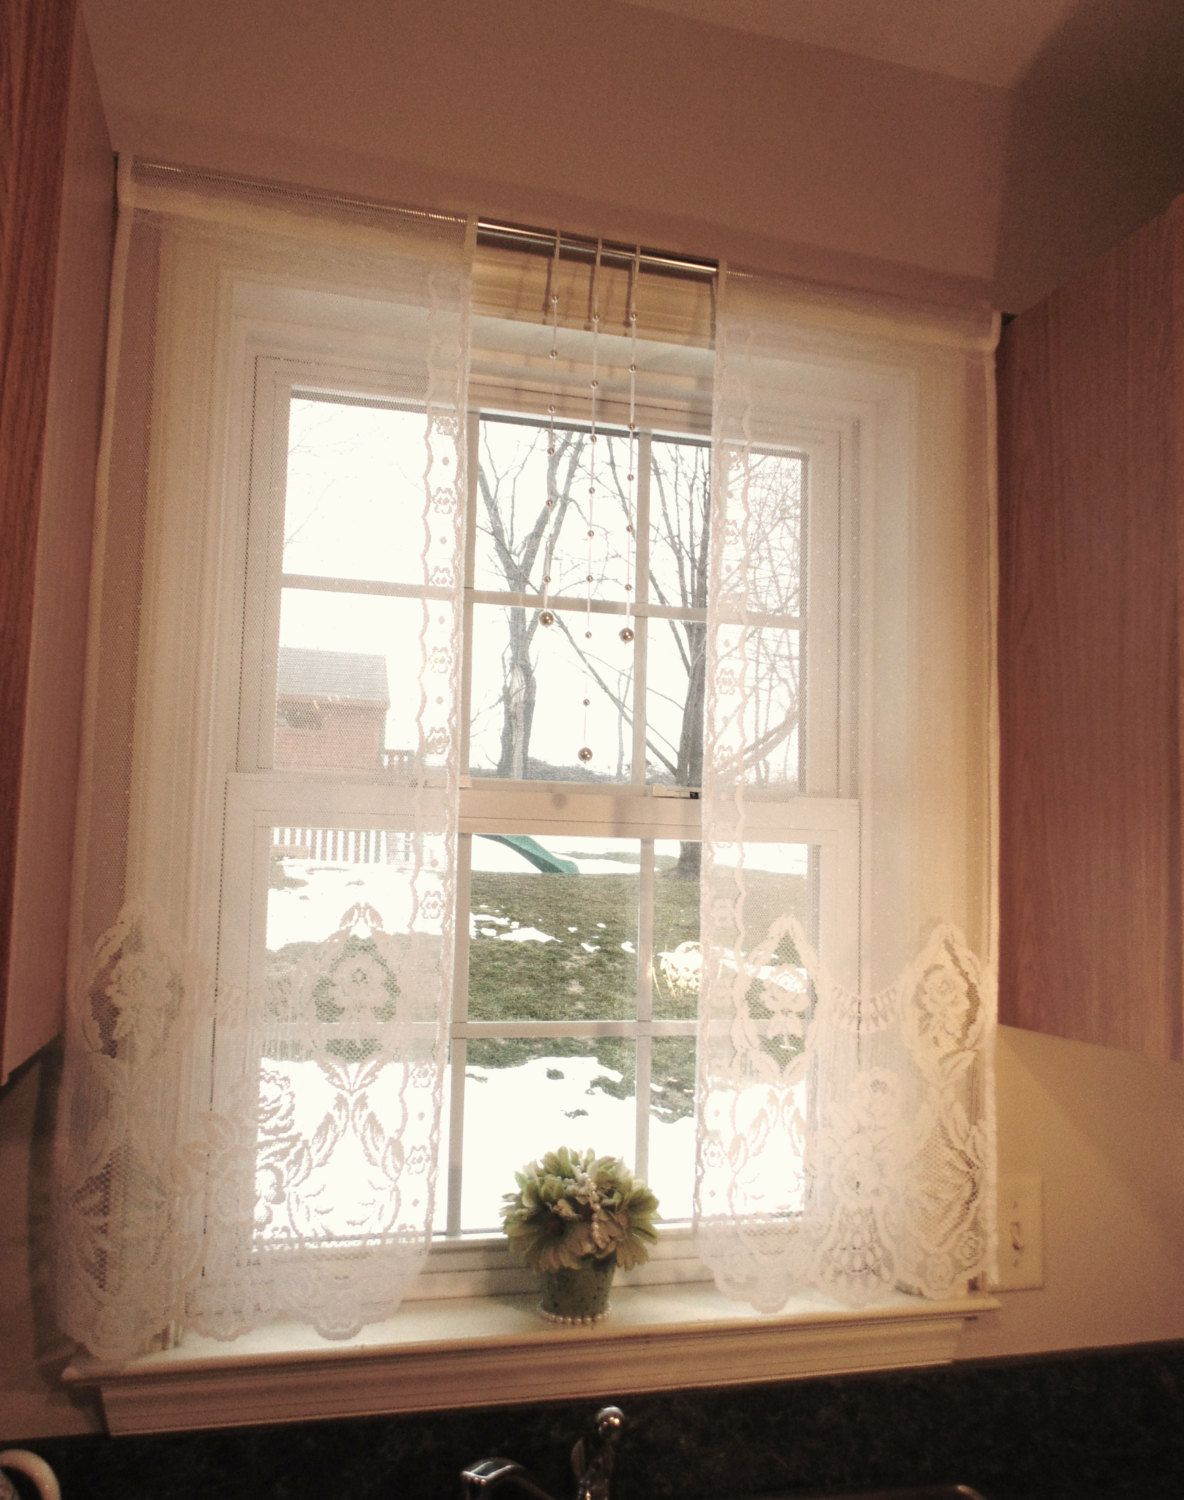 Kitchen window treatments  window treatment curtain panels lace curtains kitchen window curtains